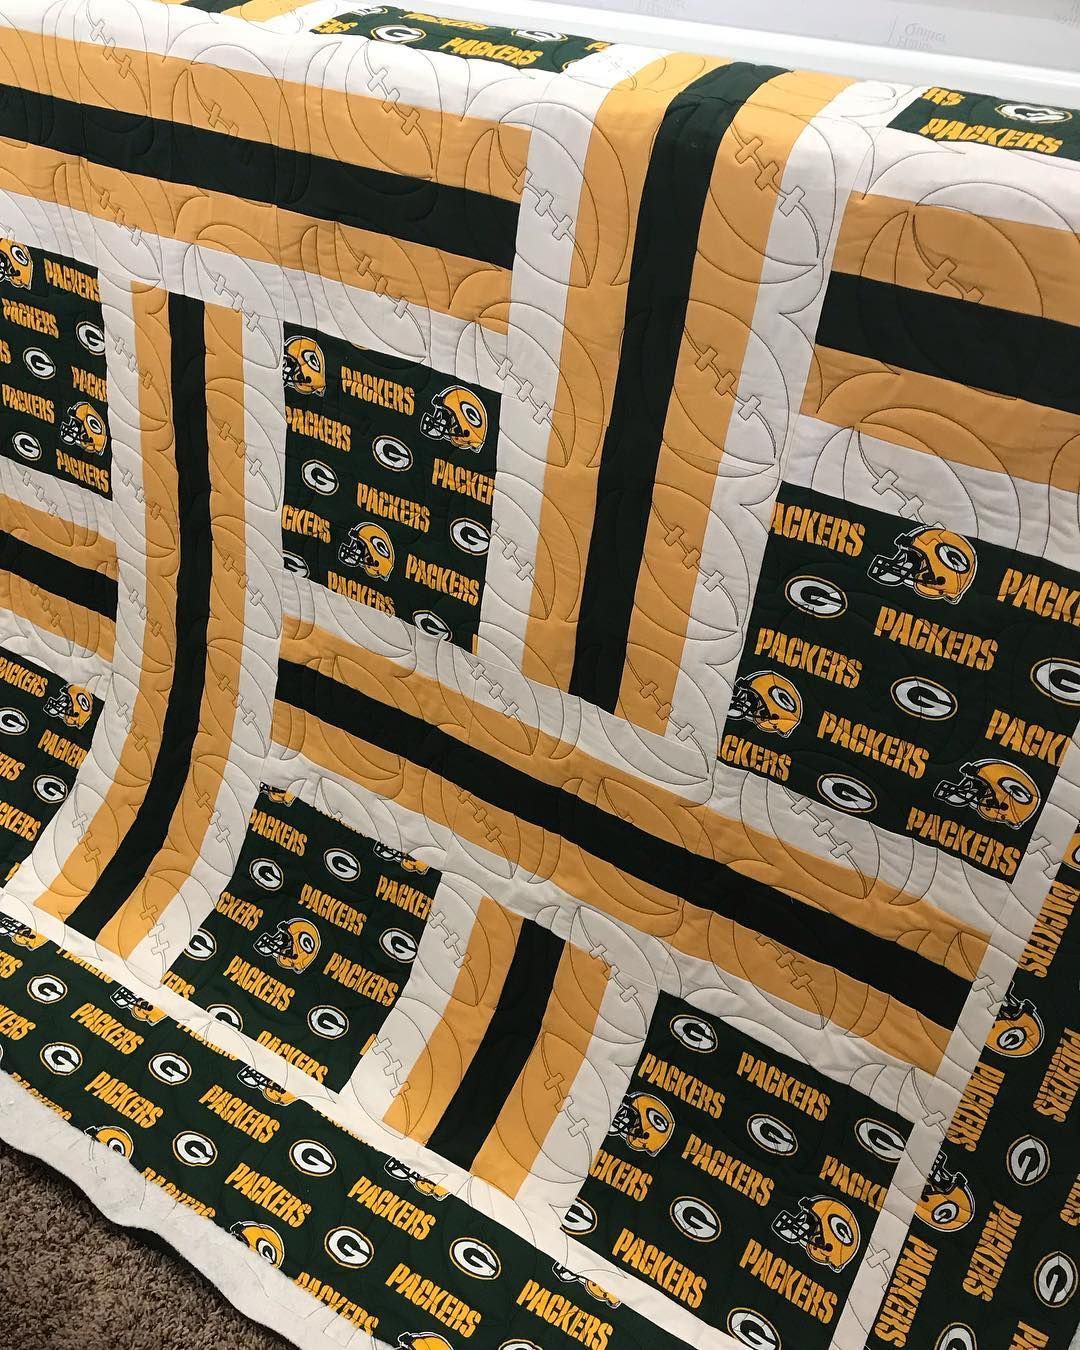 Look How Fun This Packers Quilt Is This Football Quilting Pattern Is So Awesome Thanks Tina For Letting Me Quilt Quilts Sports Quilts Quilt Patterns